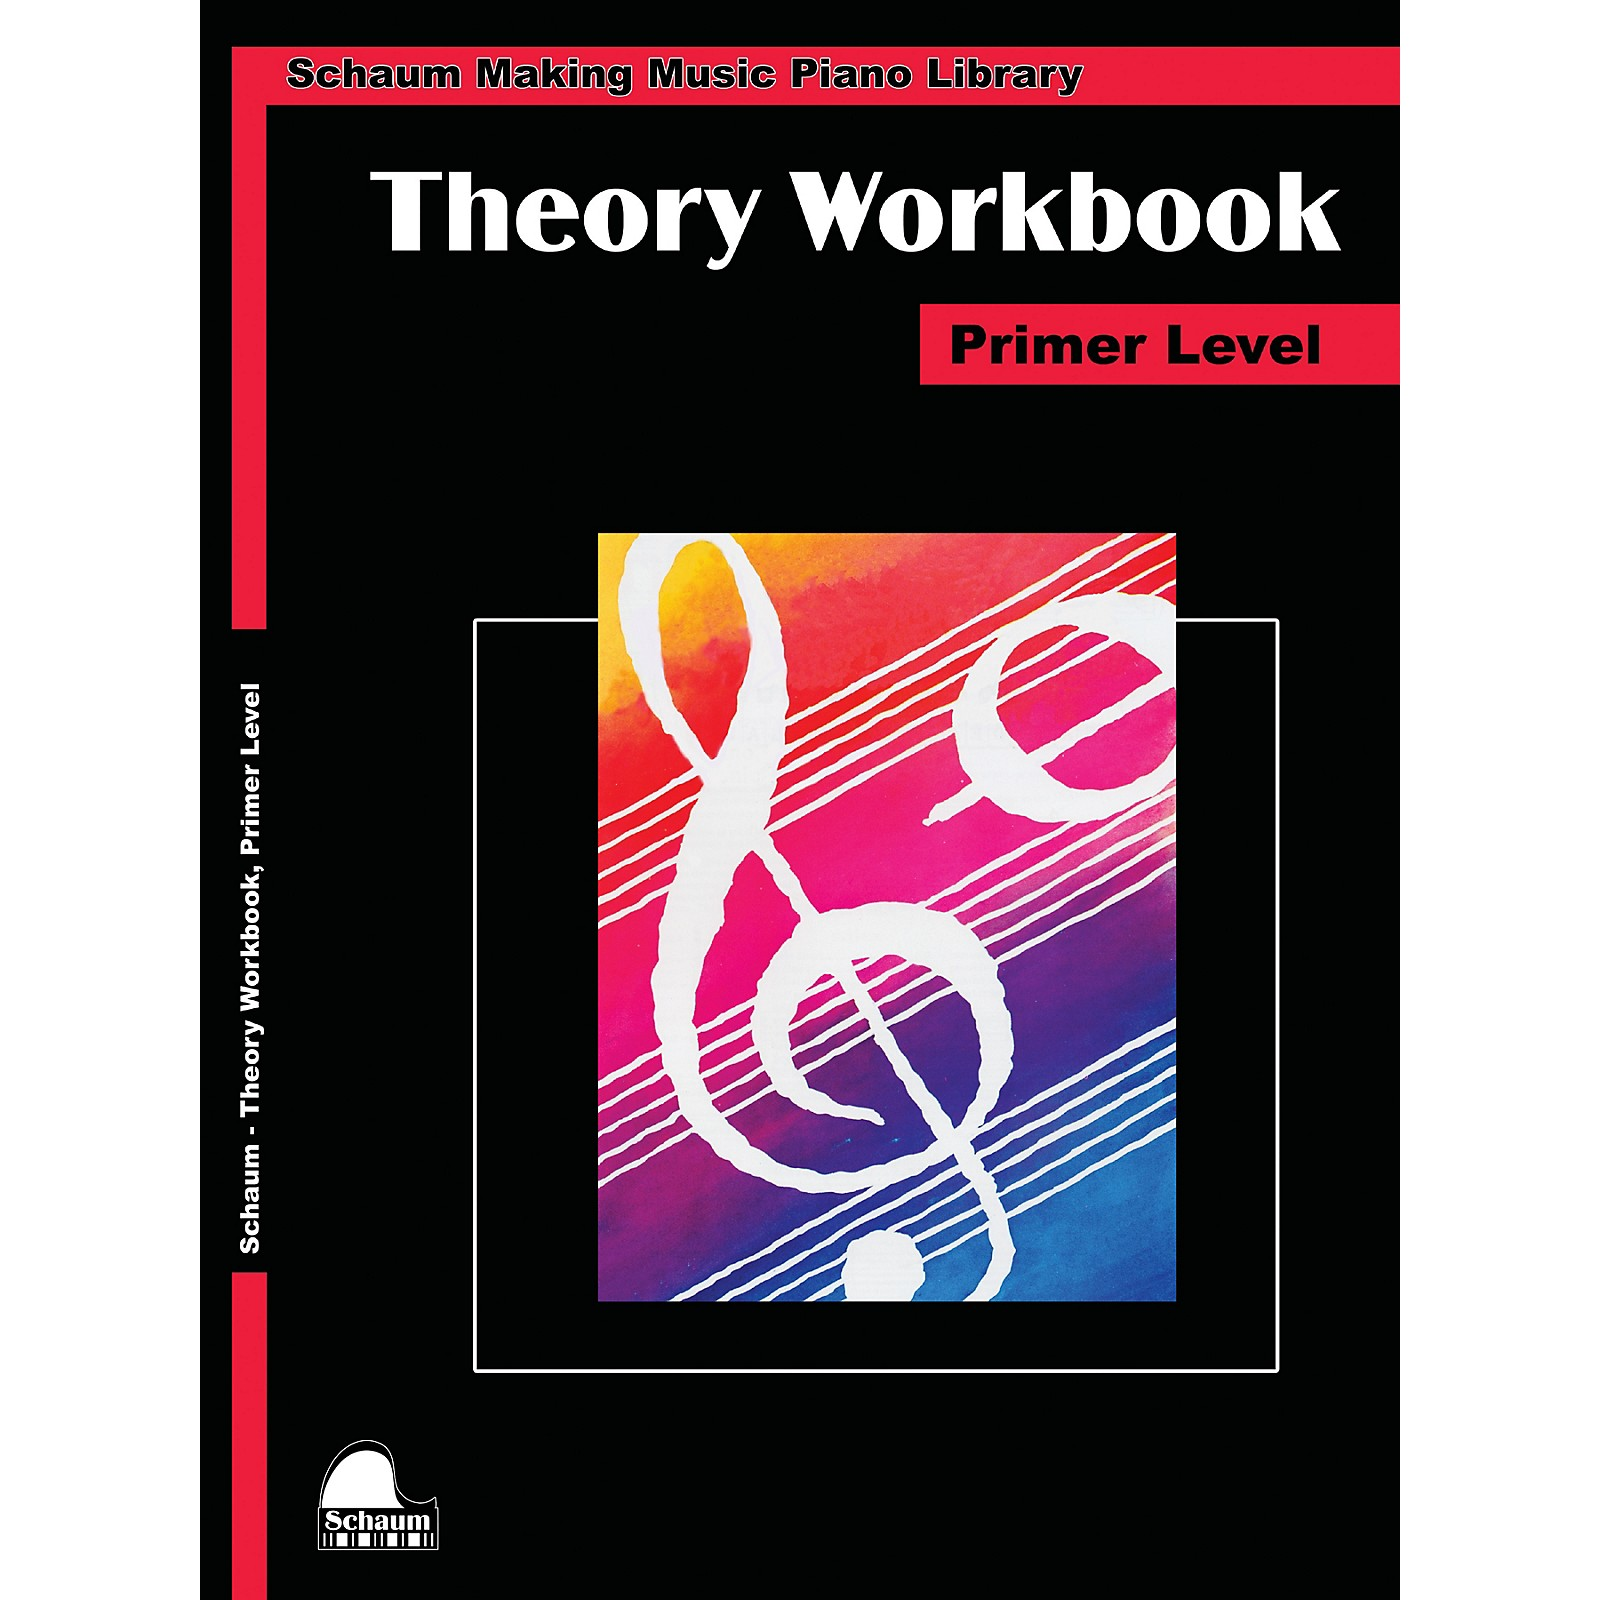 SCHAUM Theory Workbook - Primer Educational Piano Book by Wesley Schaum